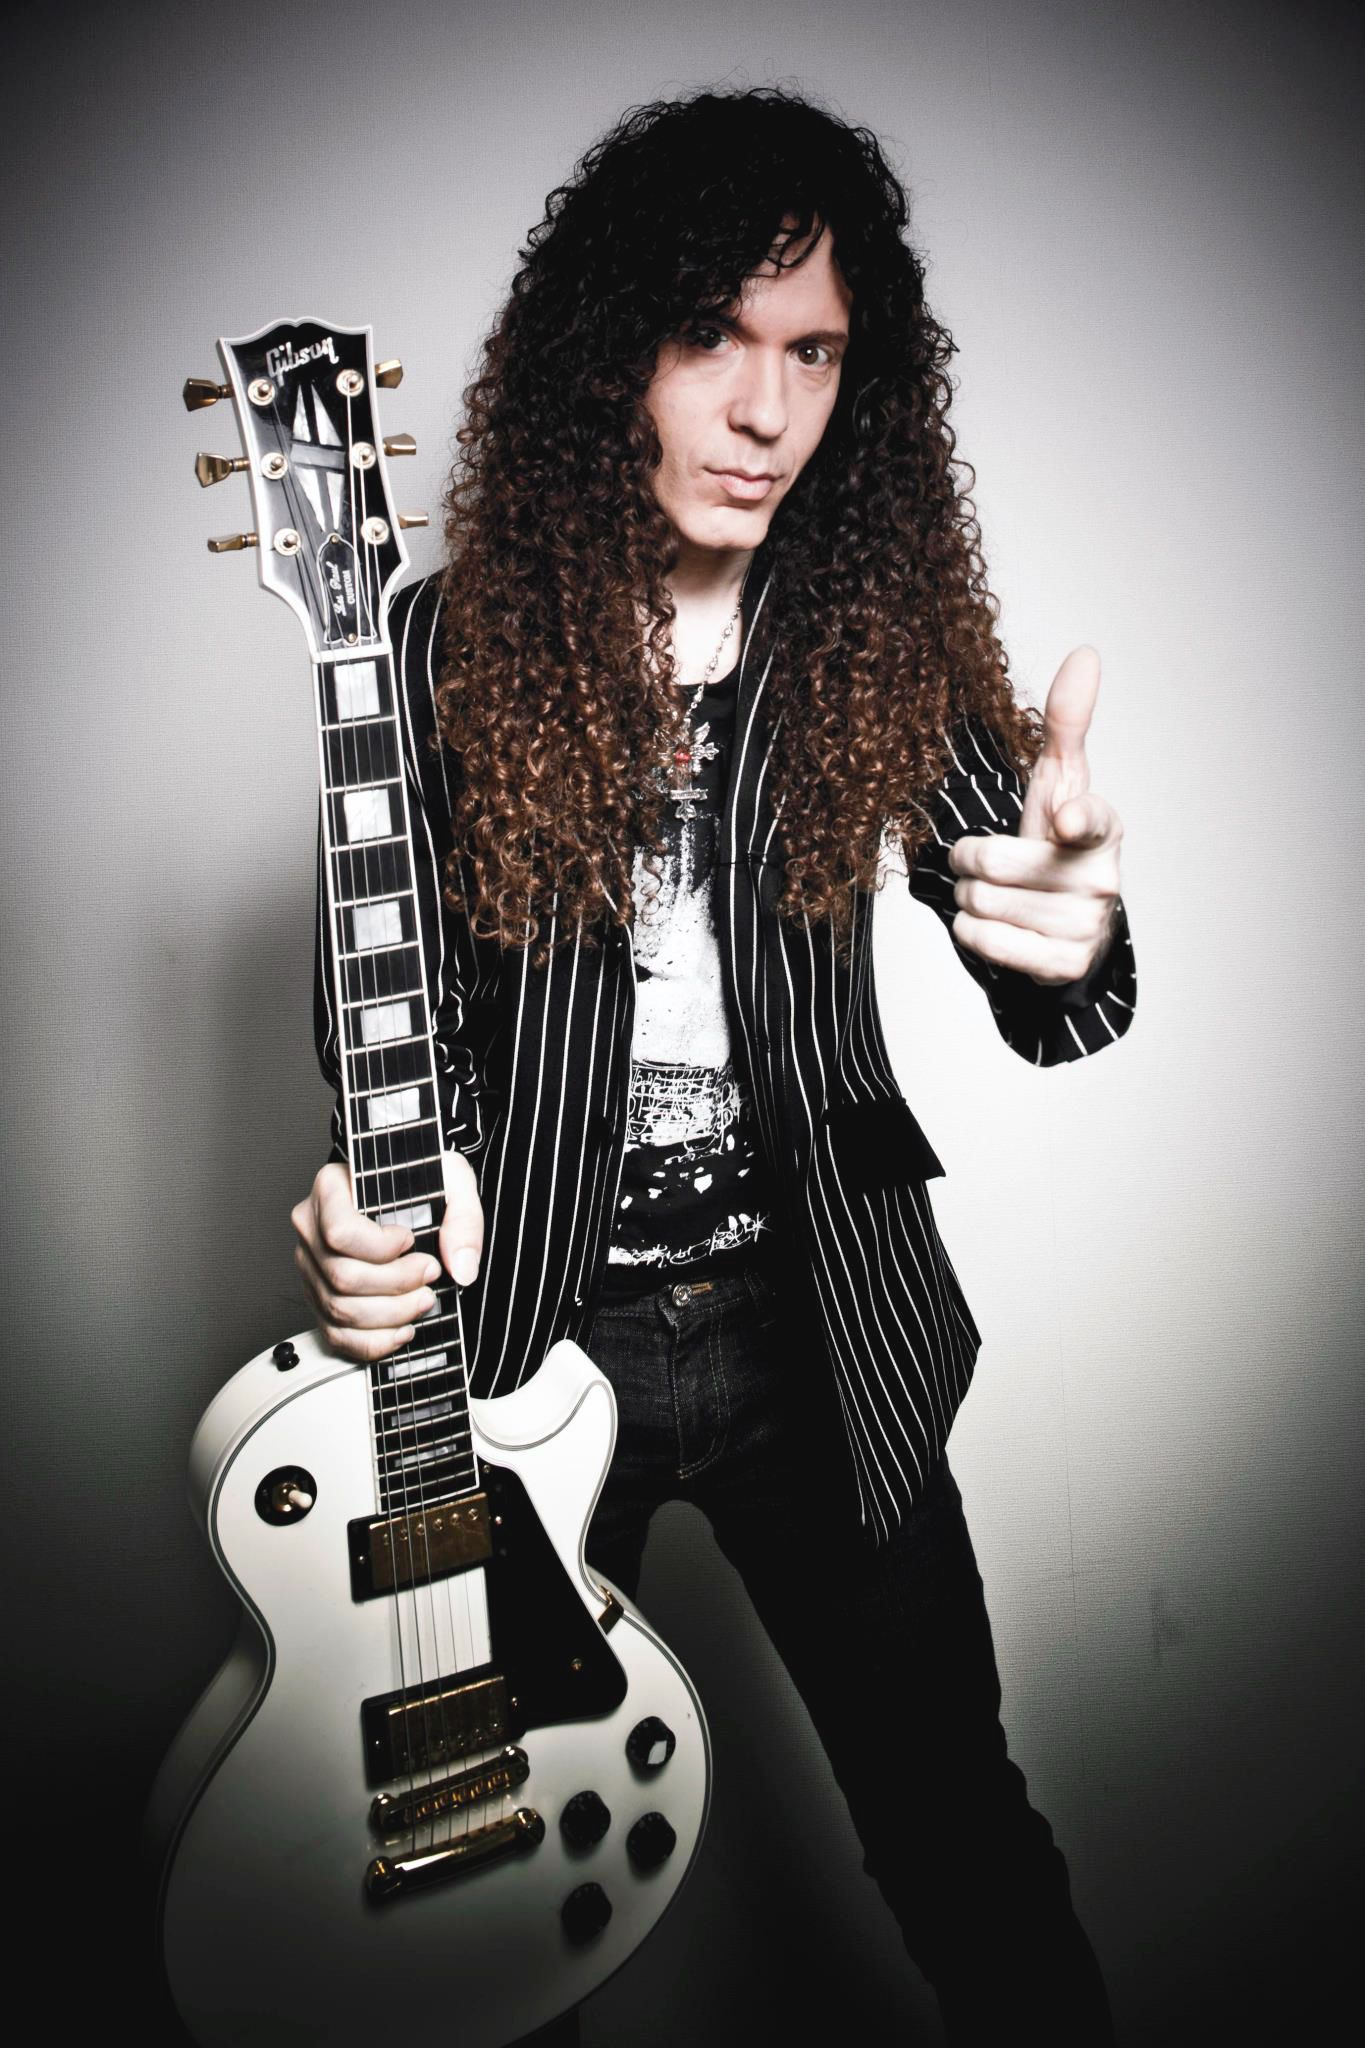 File:Marty Friedman.jpg